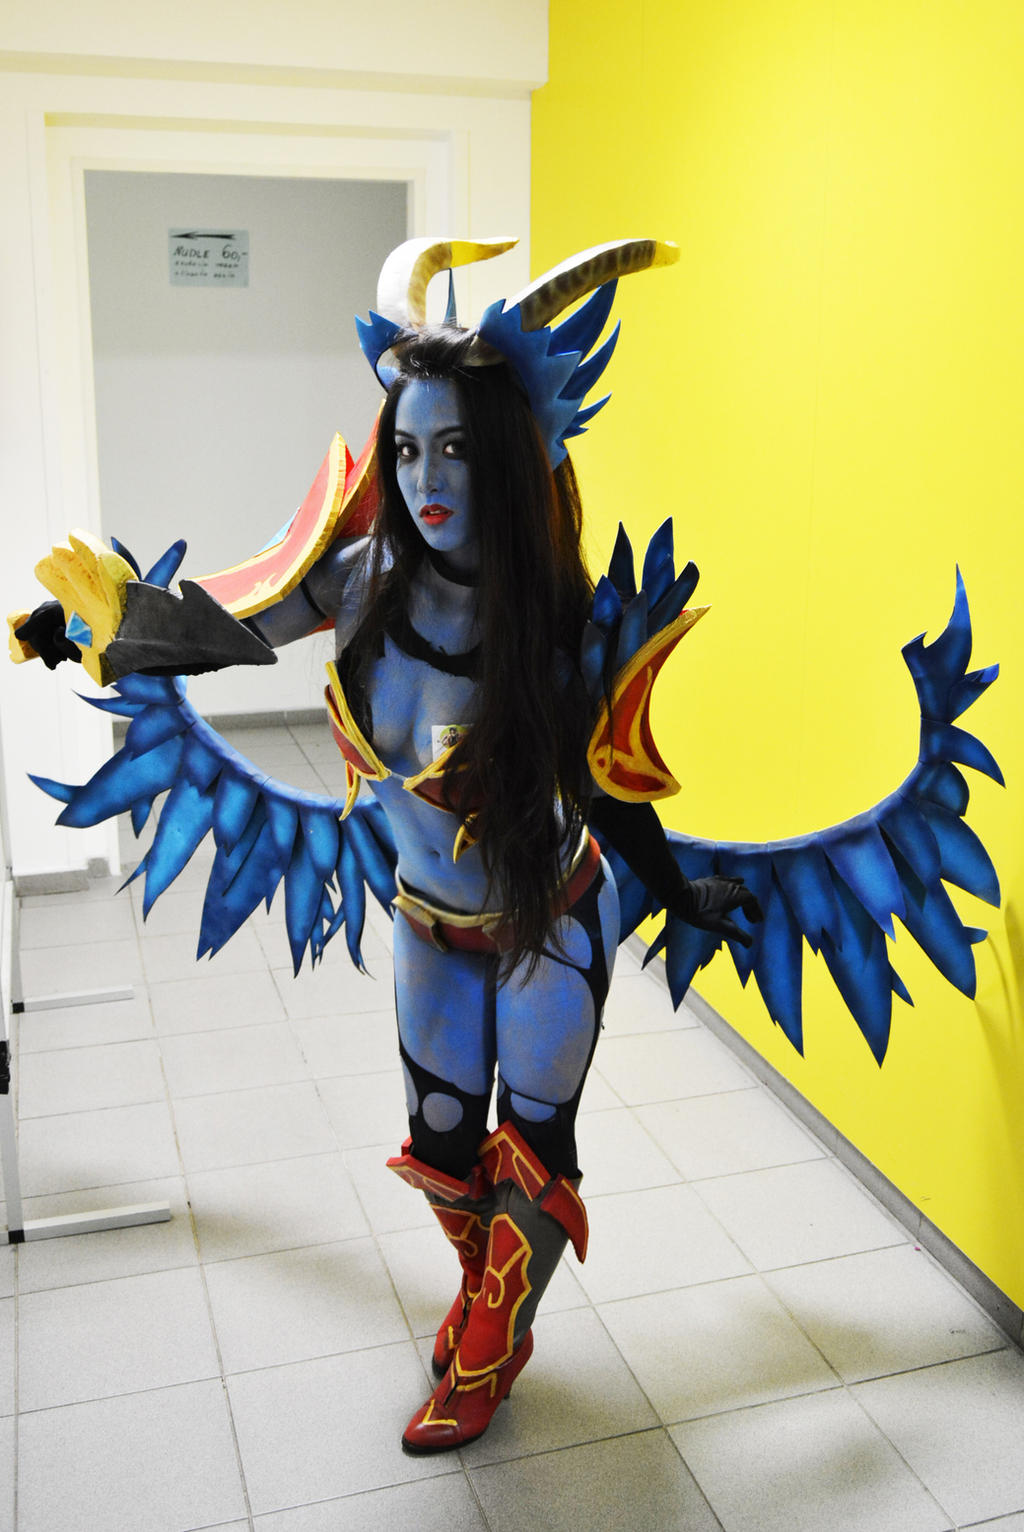 Dota 2 - Queen of Pain cosplay by TanakhTcosplayQueen Of Pain Dota 2 Cosplay